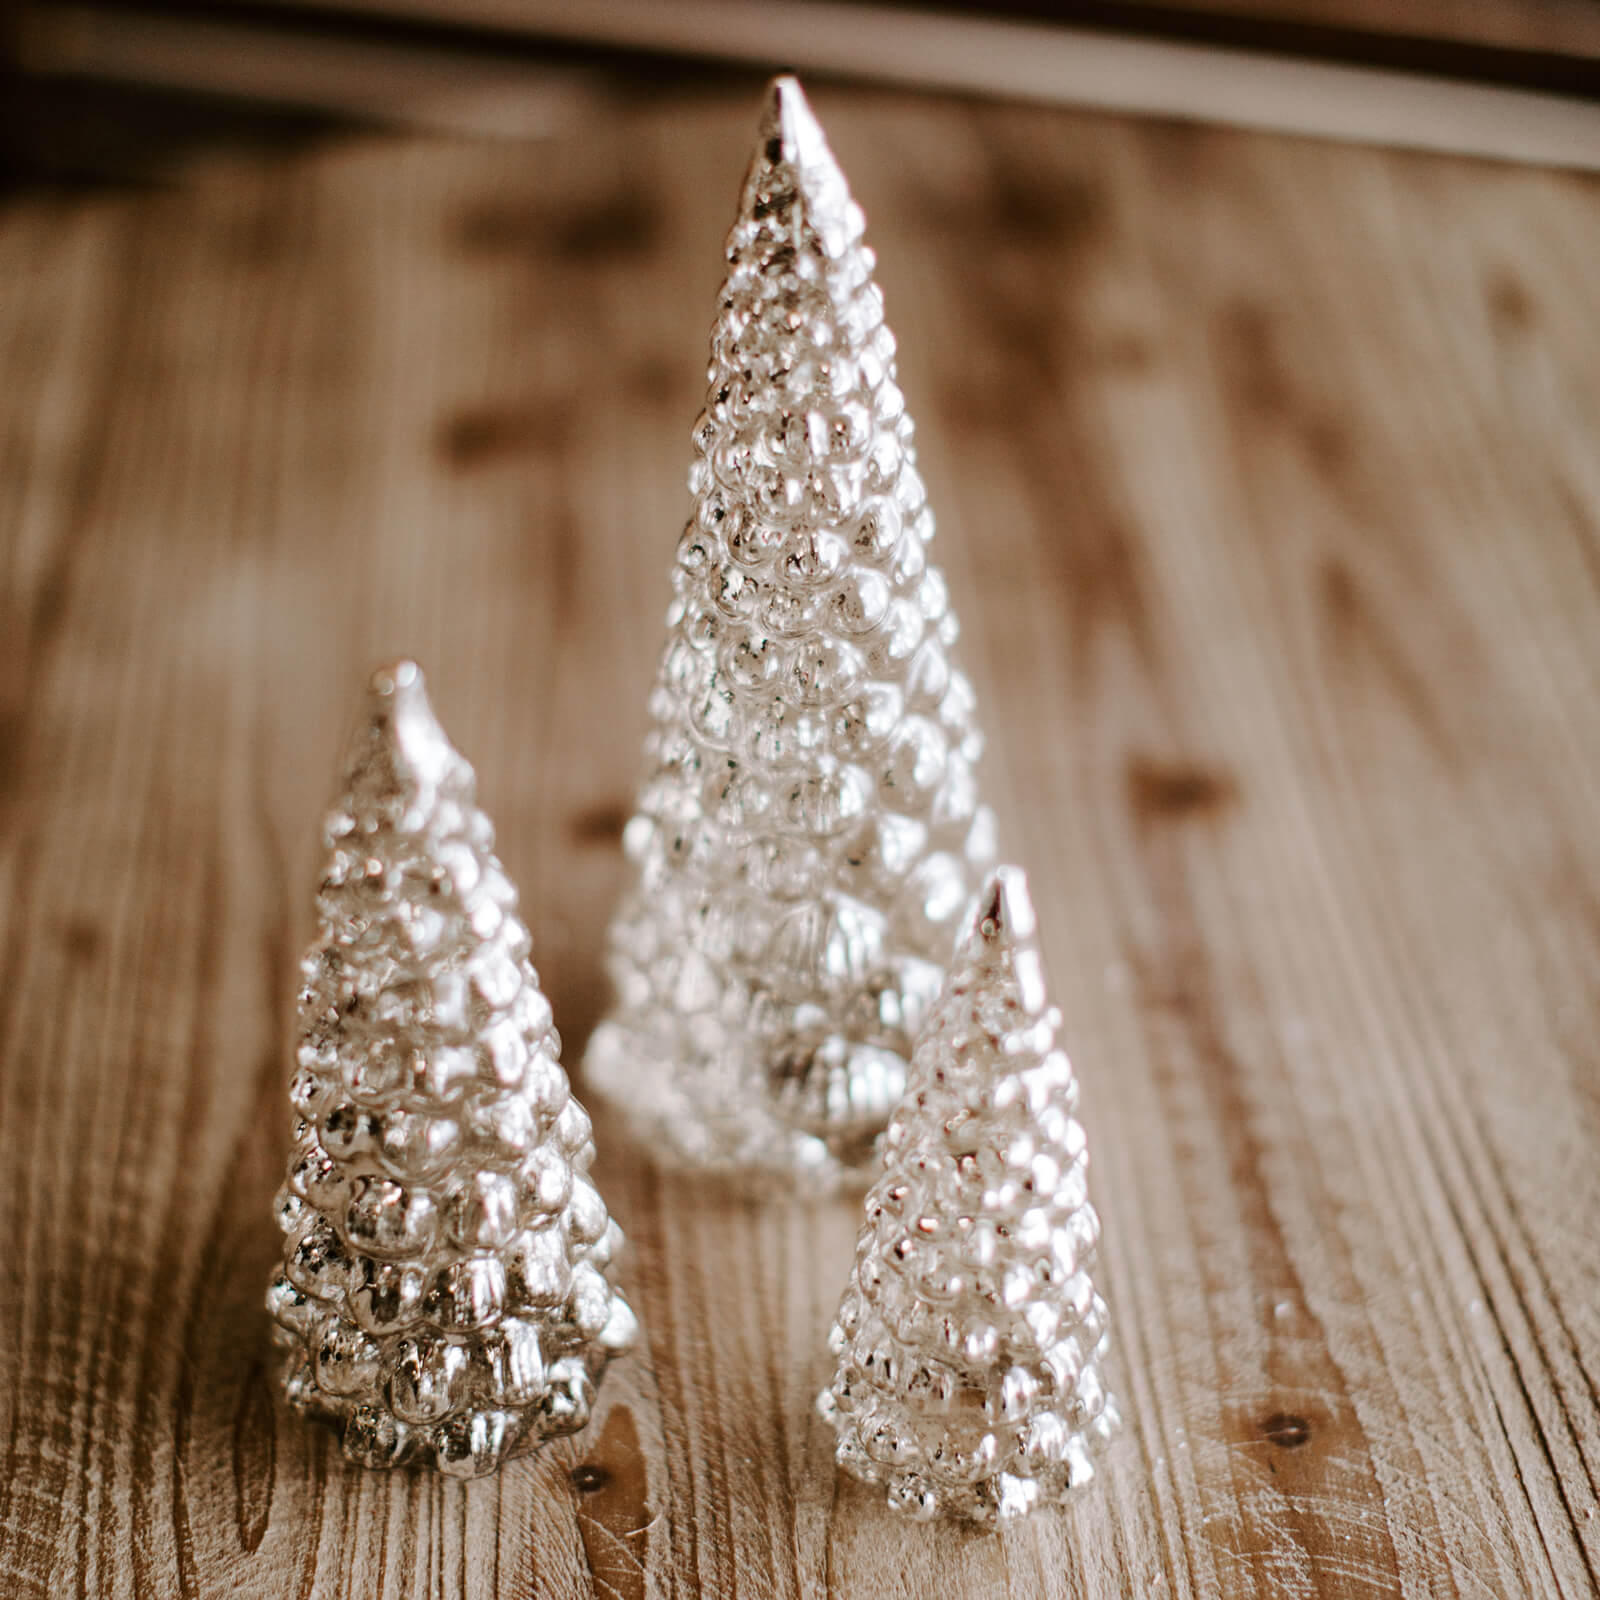 Group of 3 clear and silver mercury glass Christmas trees on a wooden tabletop